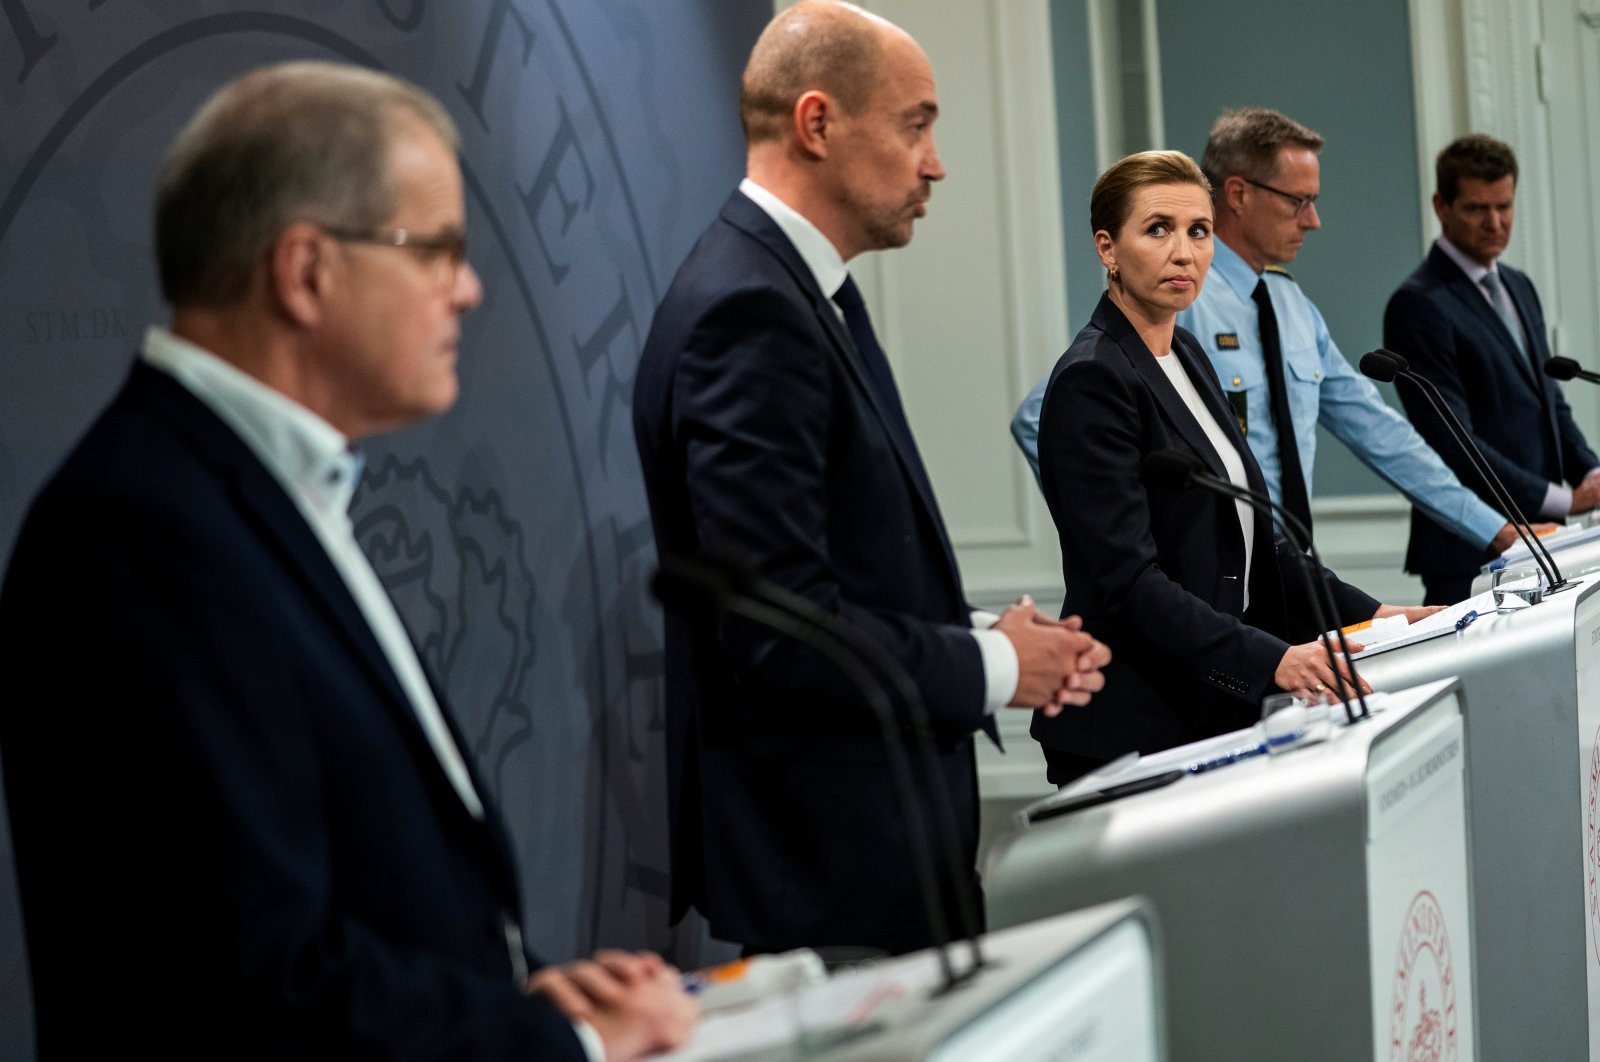 Denmark's Prime Minister Mette Frederiksen, Health Minister Magnus Heunicke (2-L), Kaare Moelbak of the Statens Serum Institut (L), Soren Brostrom director of the National Board of Health (R) and Thorkild Fogde chief of police, (2-R), attend a COVID-19 news conference in Copenhagen, Denmark, Sept. 18, 2020. (Reuters Photo)